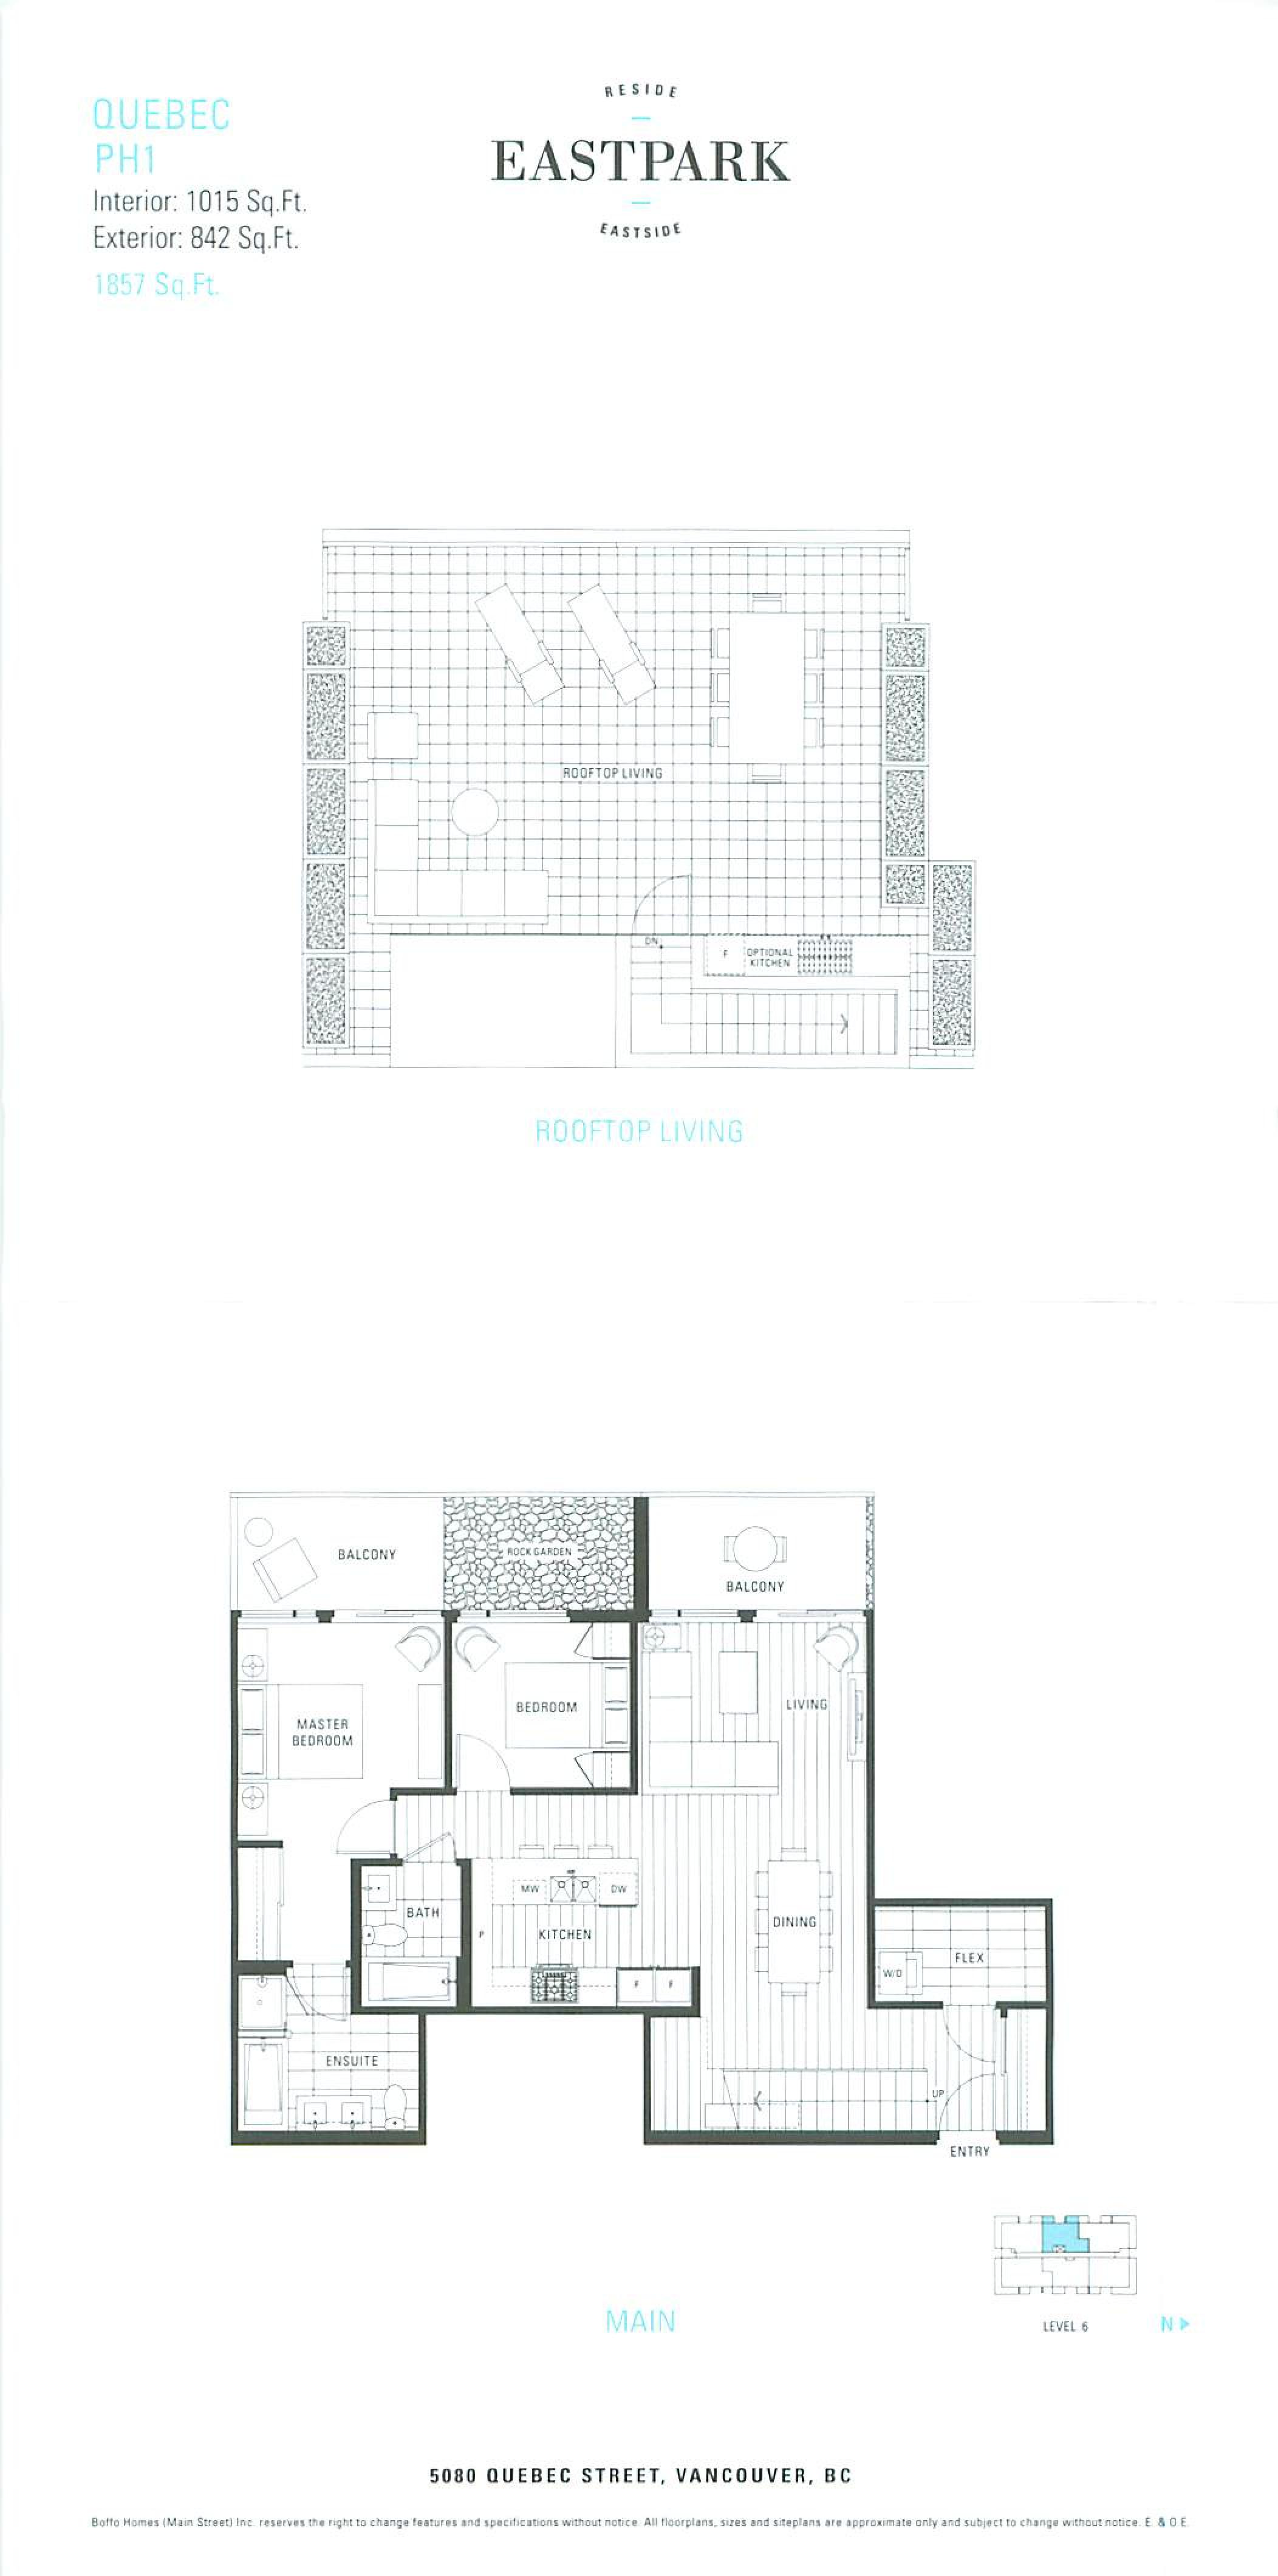 EastPark Quebec Larger Floor Plans Mike Stewart-page-001